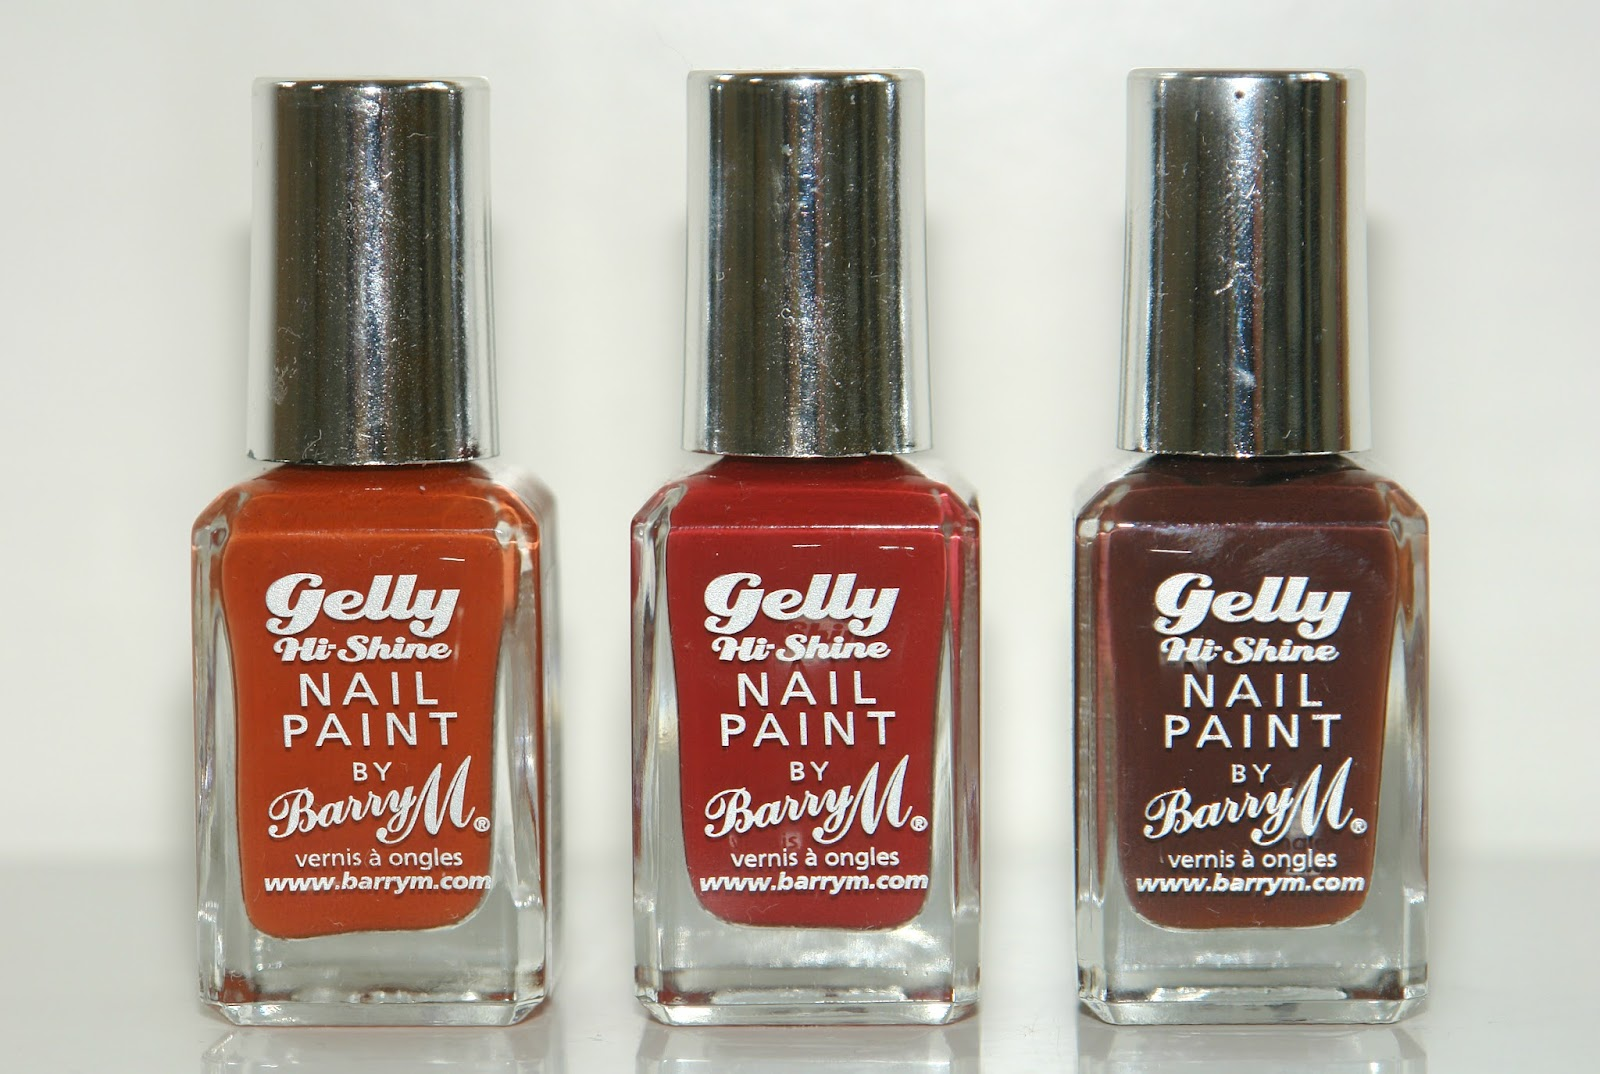 Barry M autumn nail polishes, autumn, Barry M, nail polish, nails, review, swatches, Barry M Paprika, Barry M Chilli, Barry M Cocoa, Tribal range, Gelly Hi-Shine range